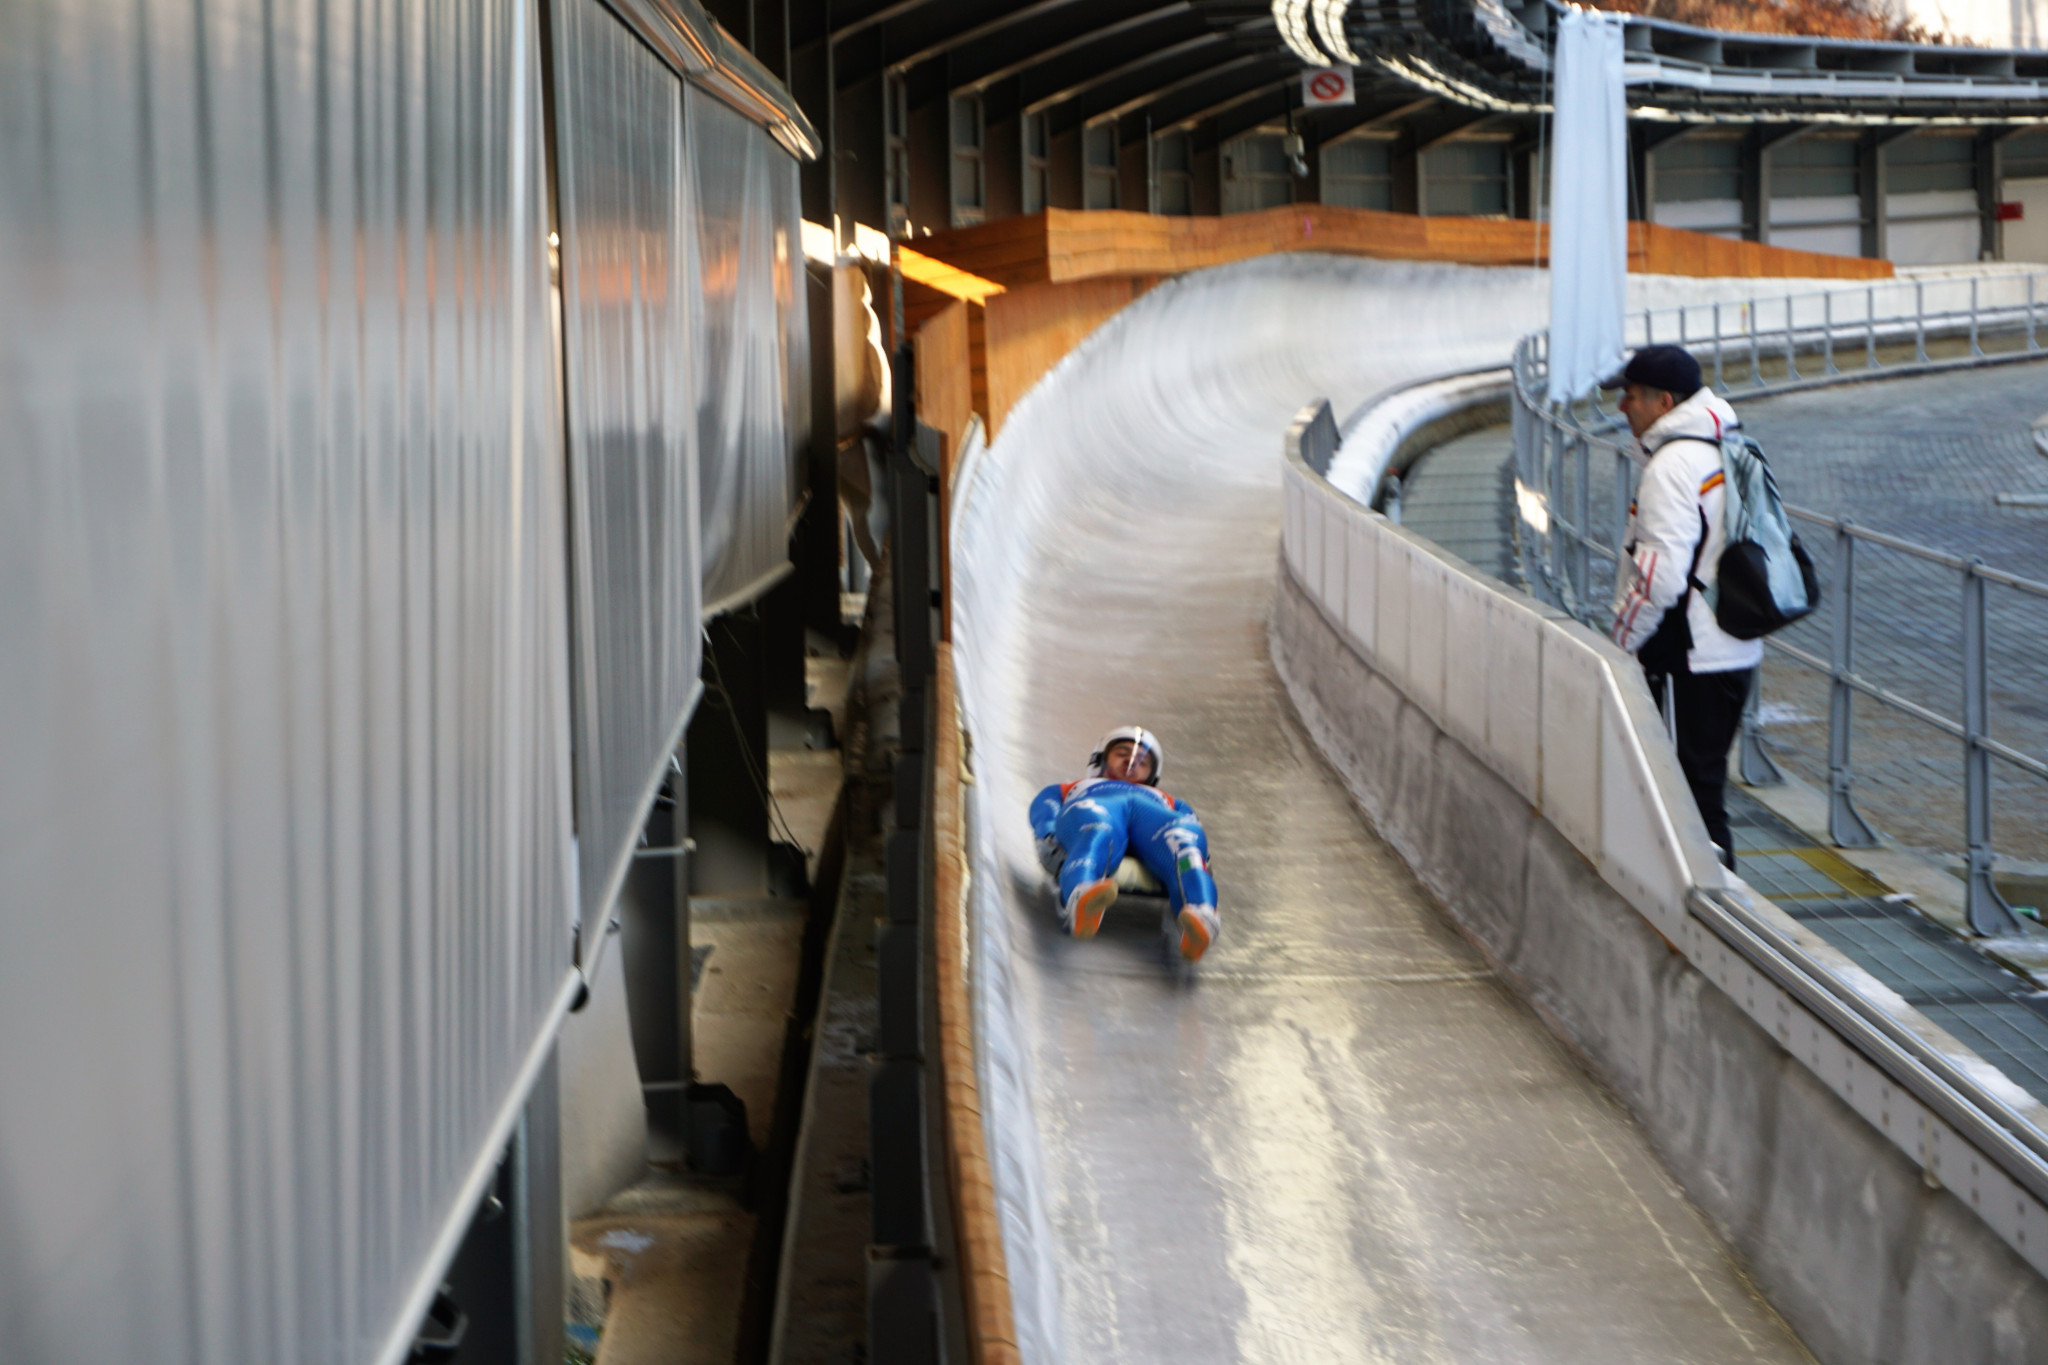 International Luge Federation hail successful training week on Pyeongchang 2018 track